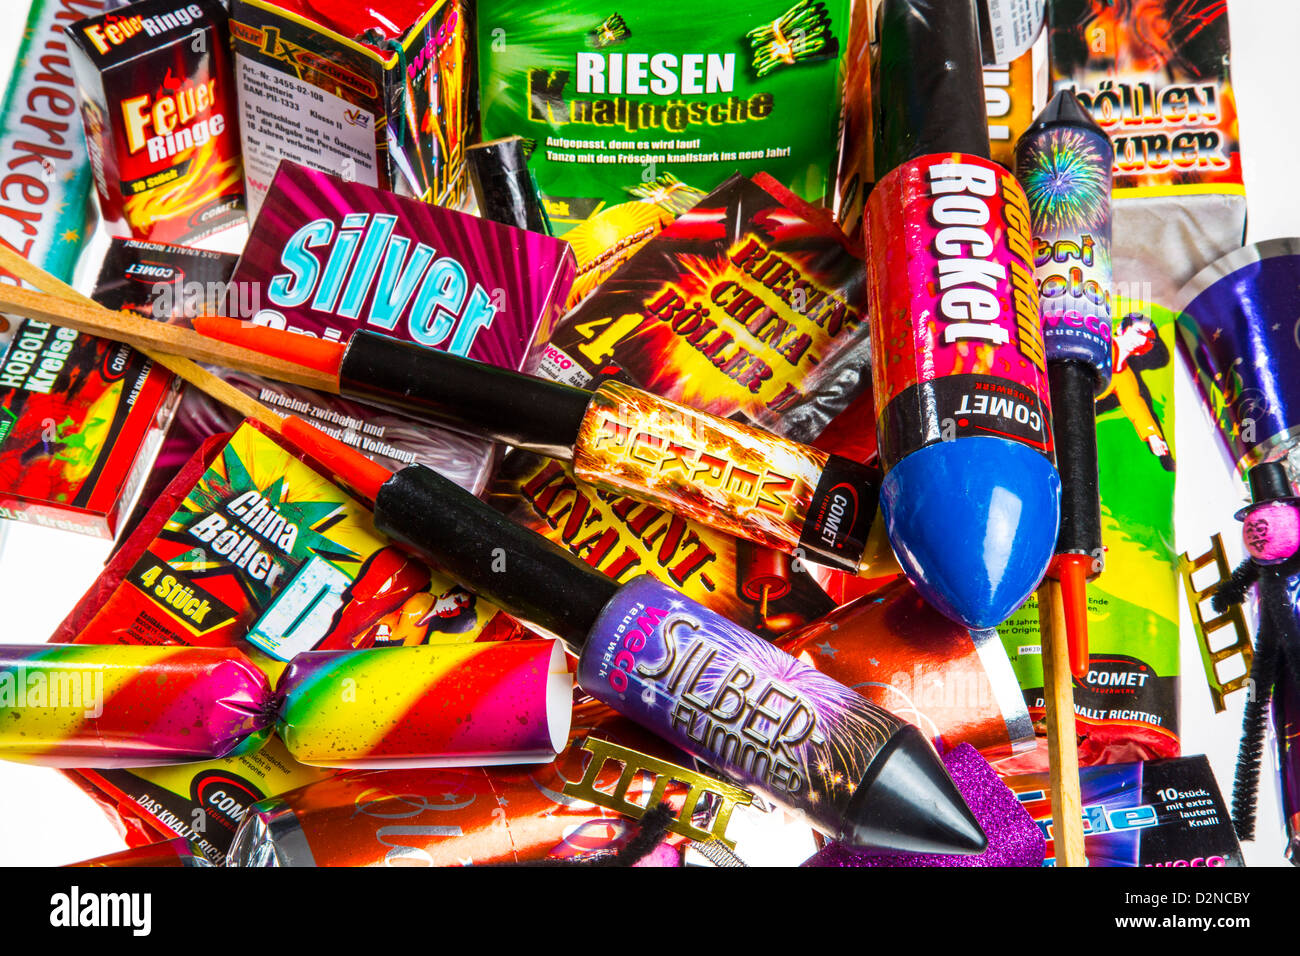 Different types of fireworks. - Stock Image